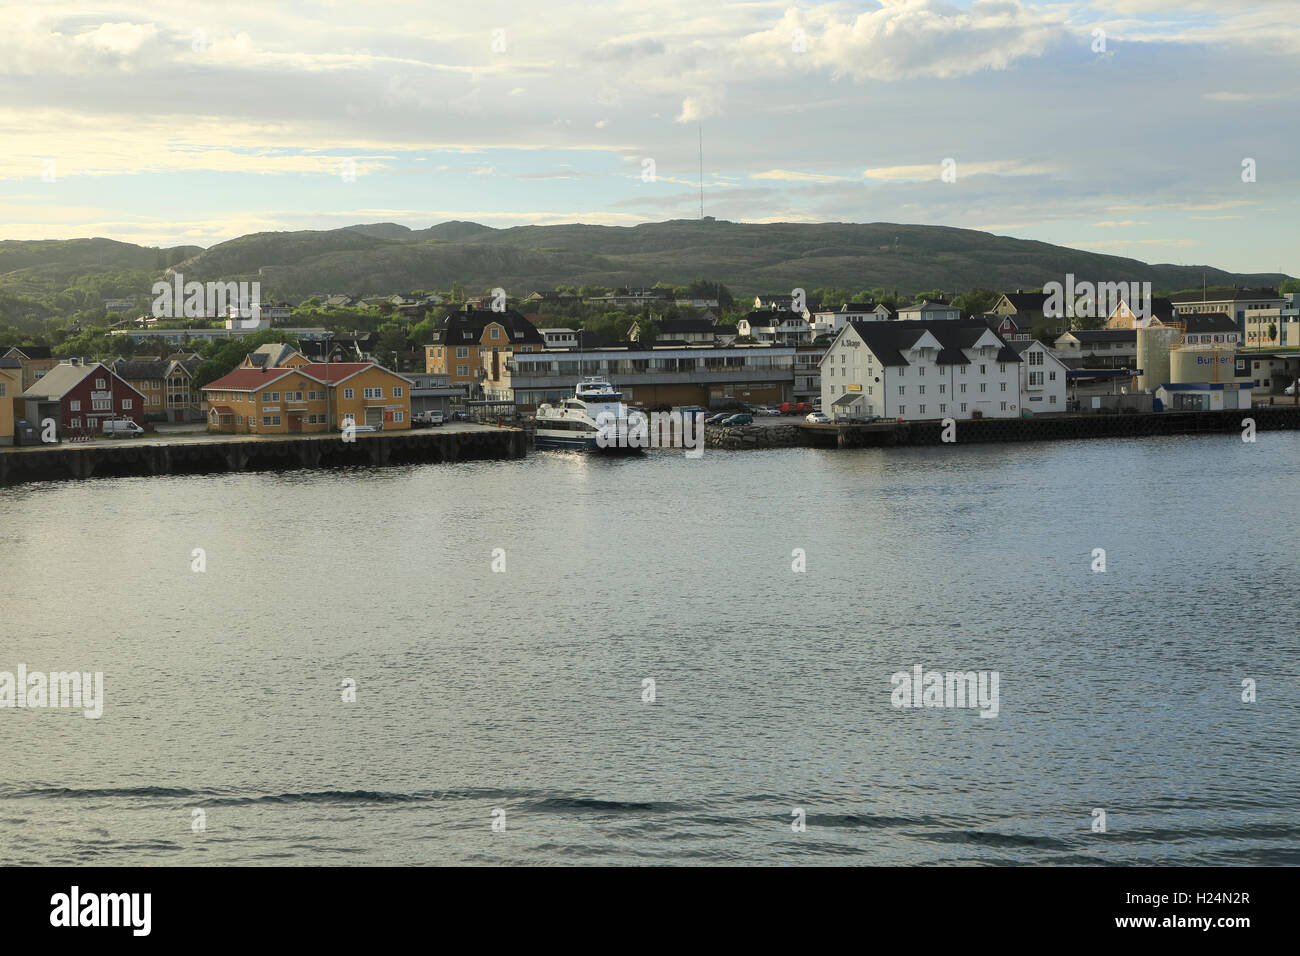 Rorvik, a port village in the municipality of Vikna in Nord-Trøndelag county, Norway - Stock Image